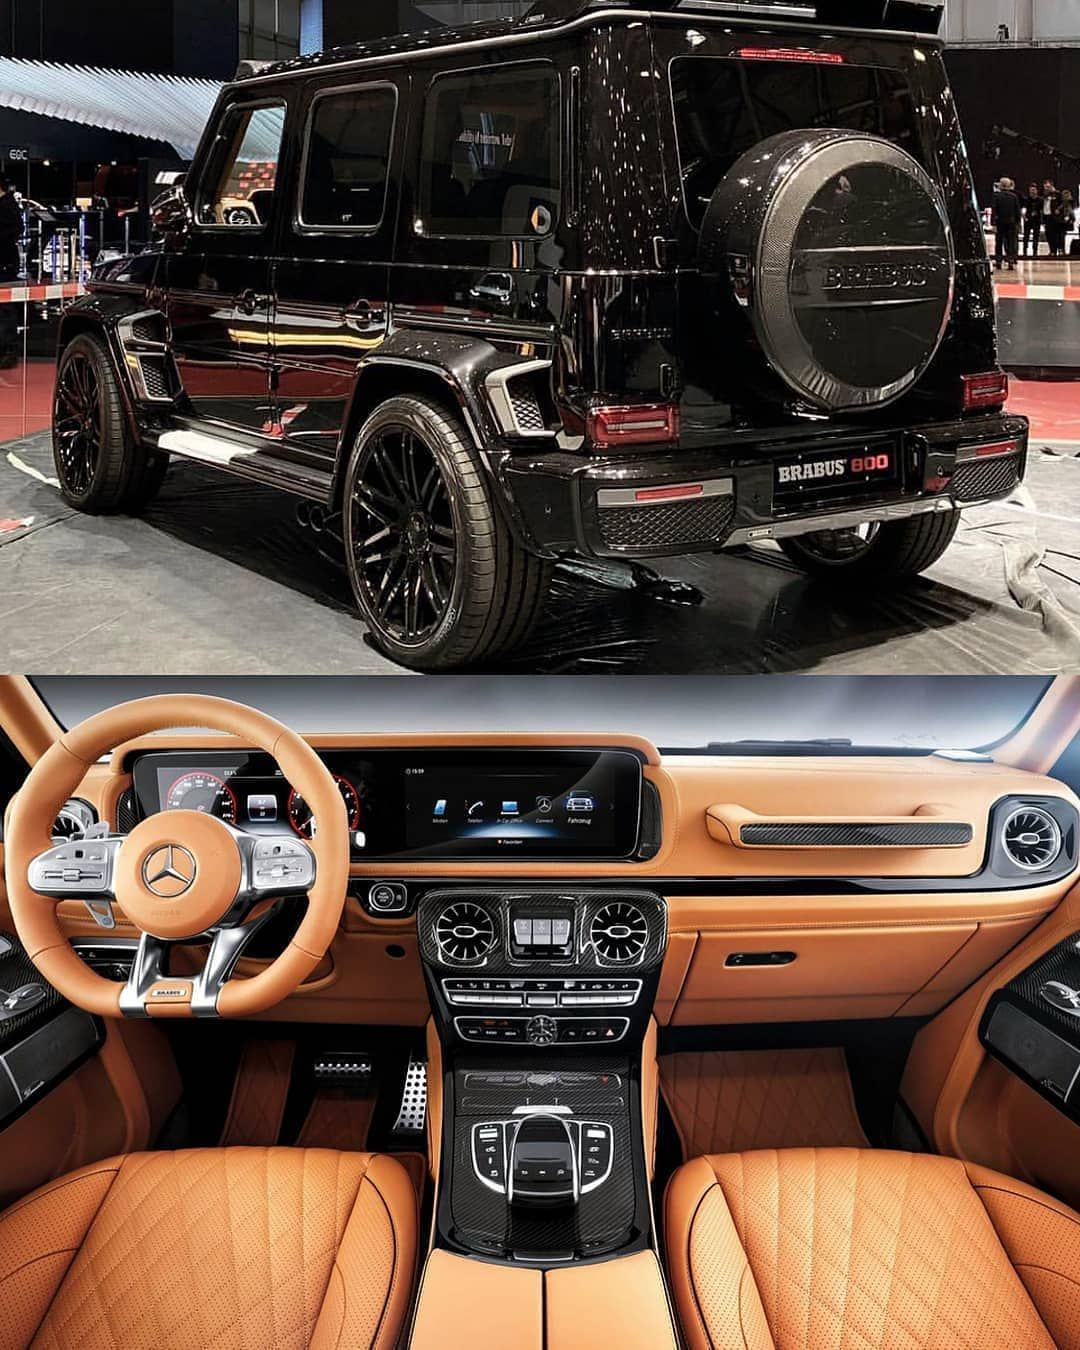 Mercedes Benz Brabus G800 Follow Uber Luxury For More Courtesy Of Mb Mafia Official Carhoots Super Luxury Cars Mercedes Benz Cars Mercedes Suv